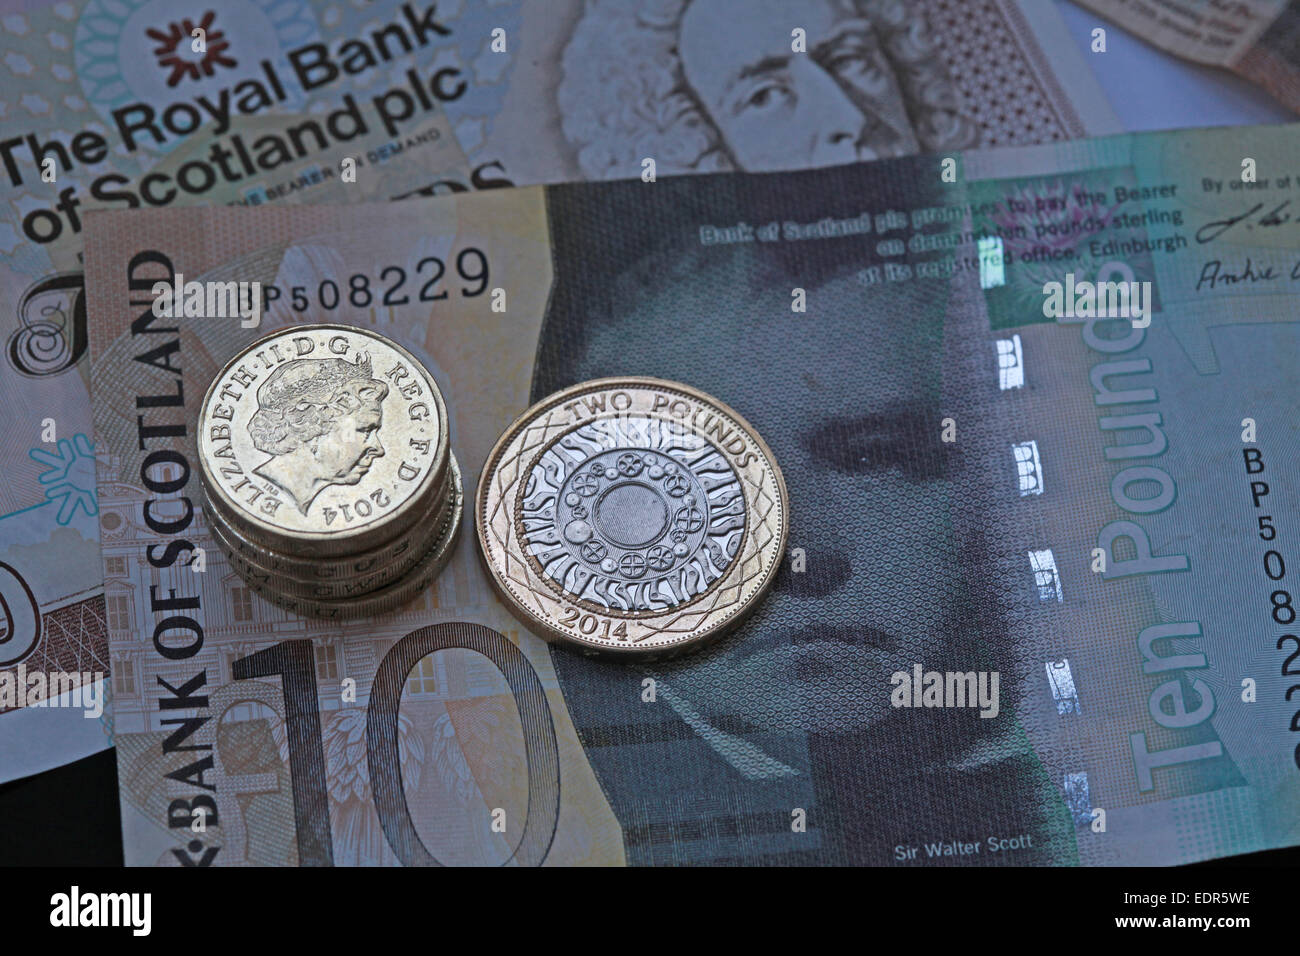 uk,Britain,British,pound,pounds,currency,Europe,banknotes,close,up,close-up,notes,still-life,stilllife,system,capital,capitalist,system,capitalism,closeup,cut-outs,cut,out,finances,financial,crisis,nobody,notes rbs bos clydesdale banks,Tartan Economy,welfare reform,Gotonysmith,retail-bank,retail,banknote,Scots,economy,economic,crisis,tax,HB,benefit,universal,welfare reform wallpaper landscape horizontal city,business,stack,pile,cash,wealth,wealthy,prosperity,mean,institutions invest,stock,speculate cash wonga prosperous,prosper,prosperity,wealth,wealthy,rich,poor,success,successful pile tartan,economy,crash,recession,British,Union,unionist,45,55,banknotes,Charter,Act,1844,coinage,Commissioners,for,Revenue,and,Customs,of,Issue,Universal benefit,Buy Pictures of,Buy Images Of